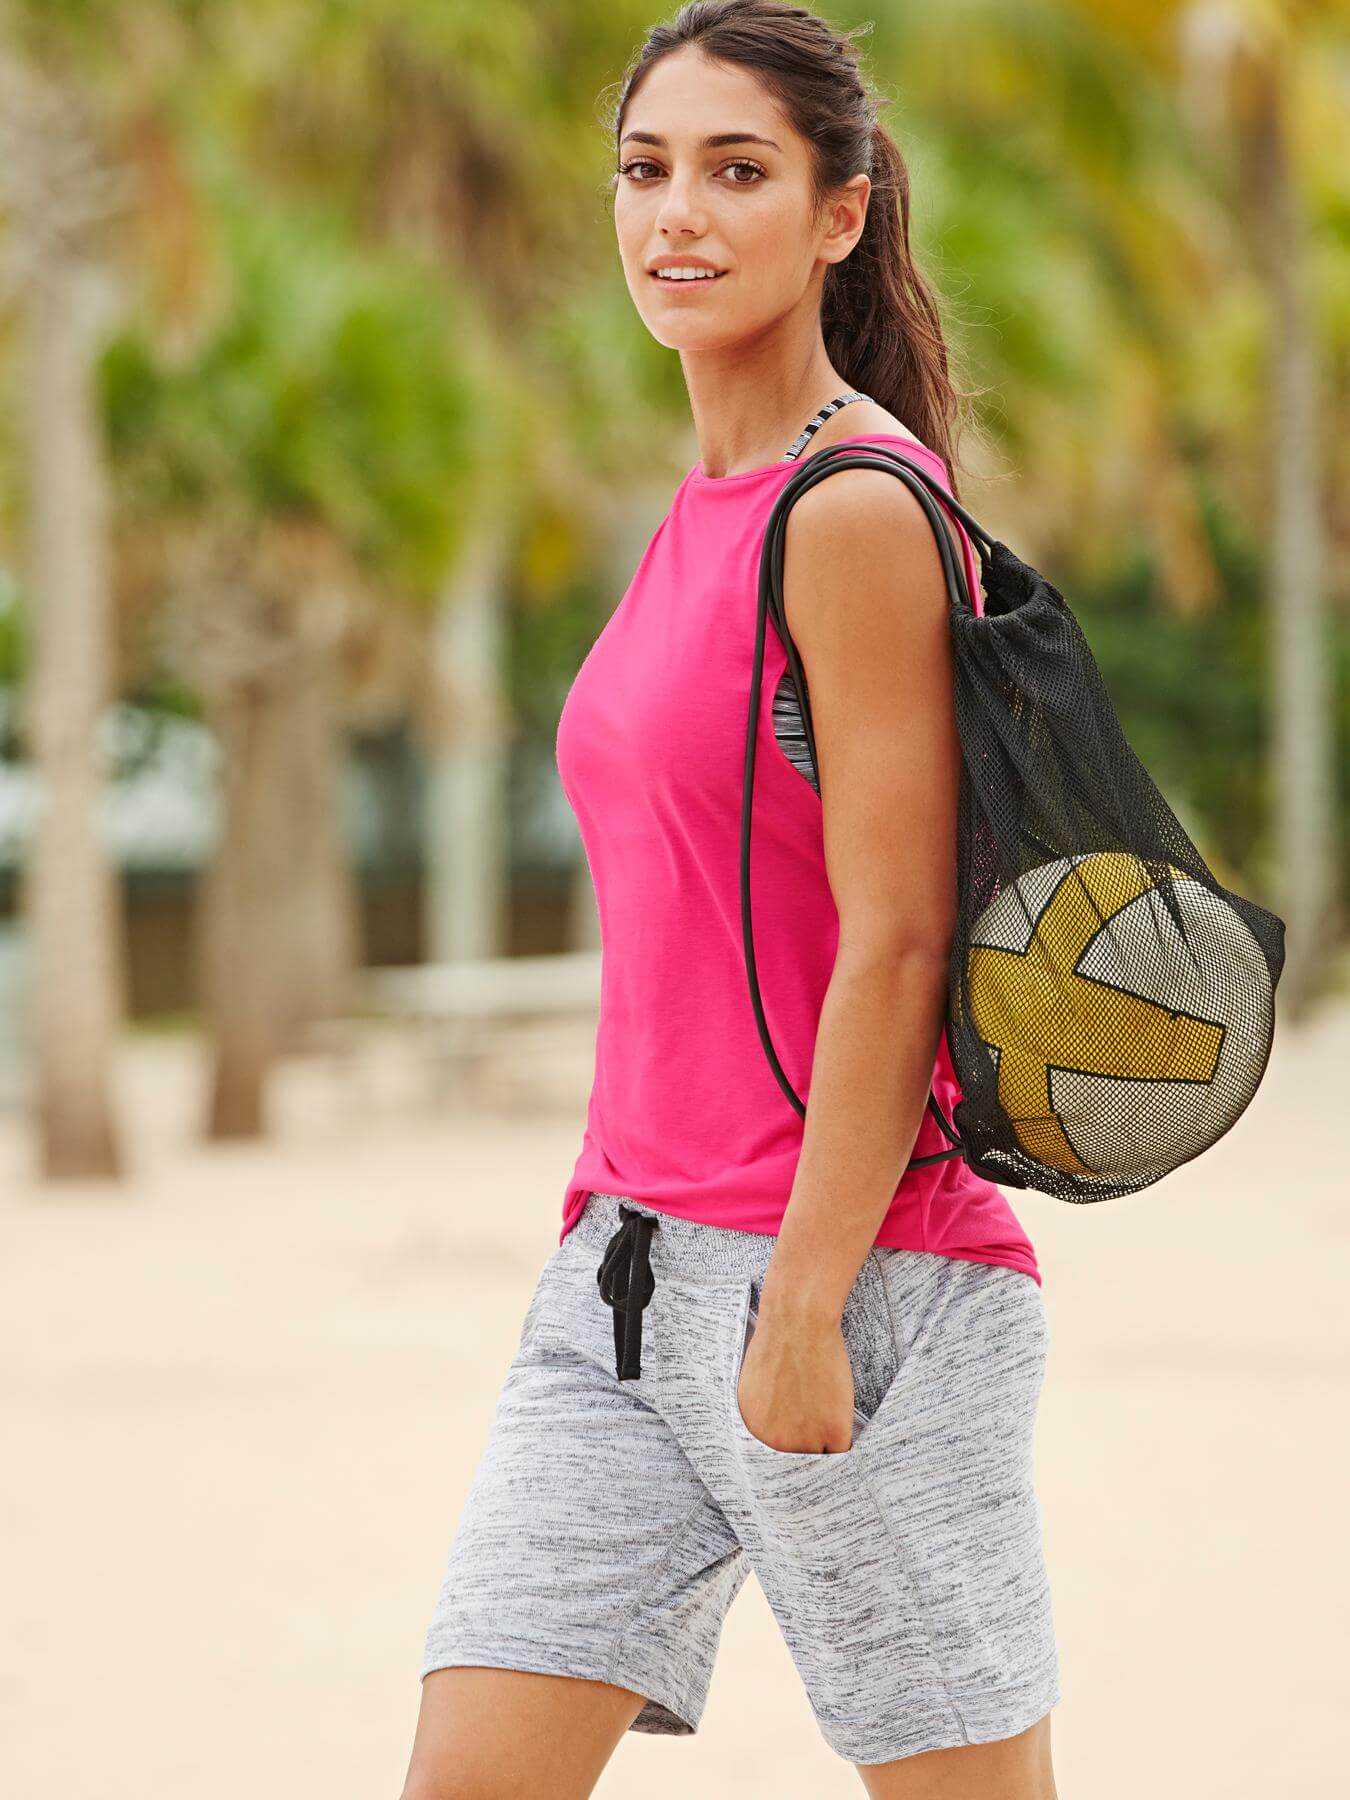 Allison Stokke hot side look